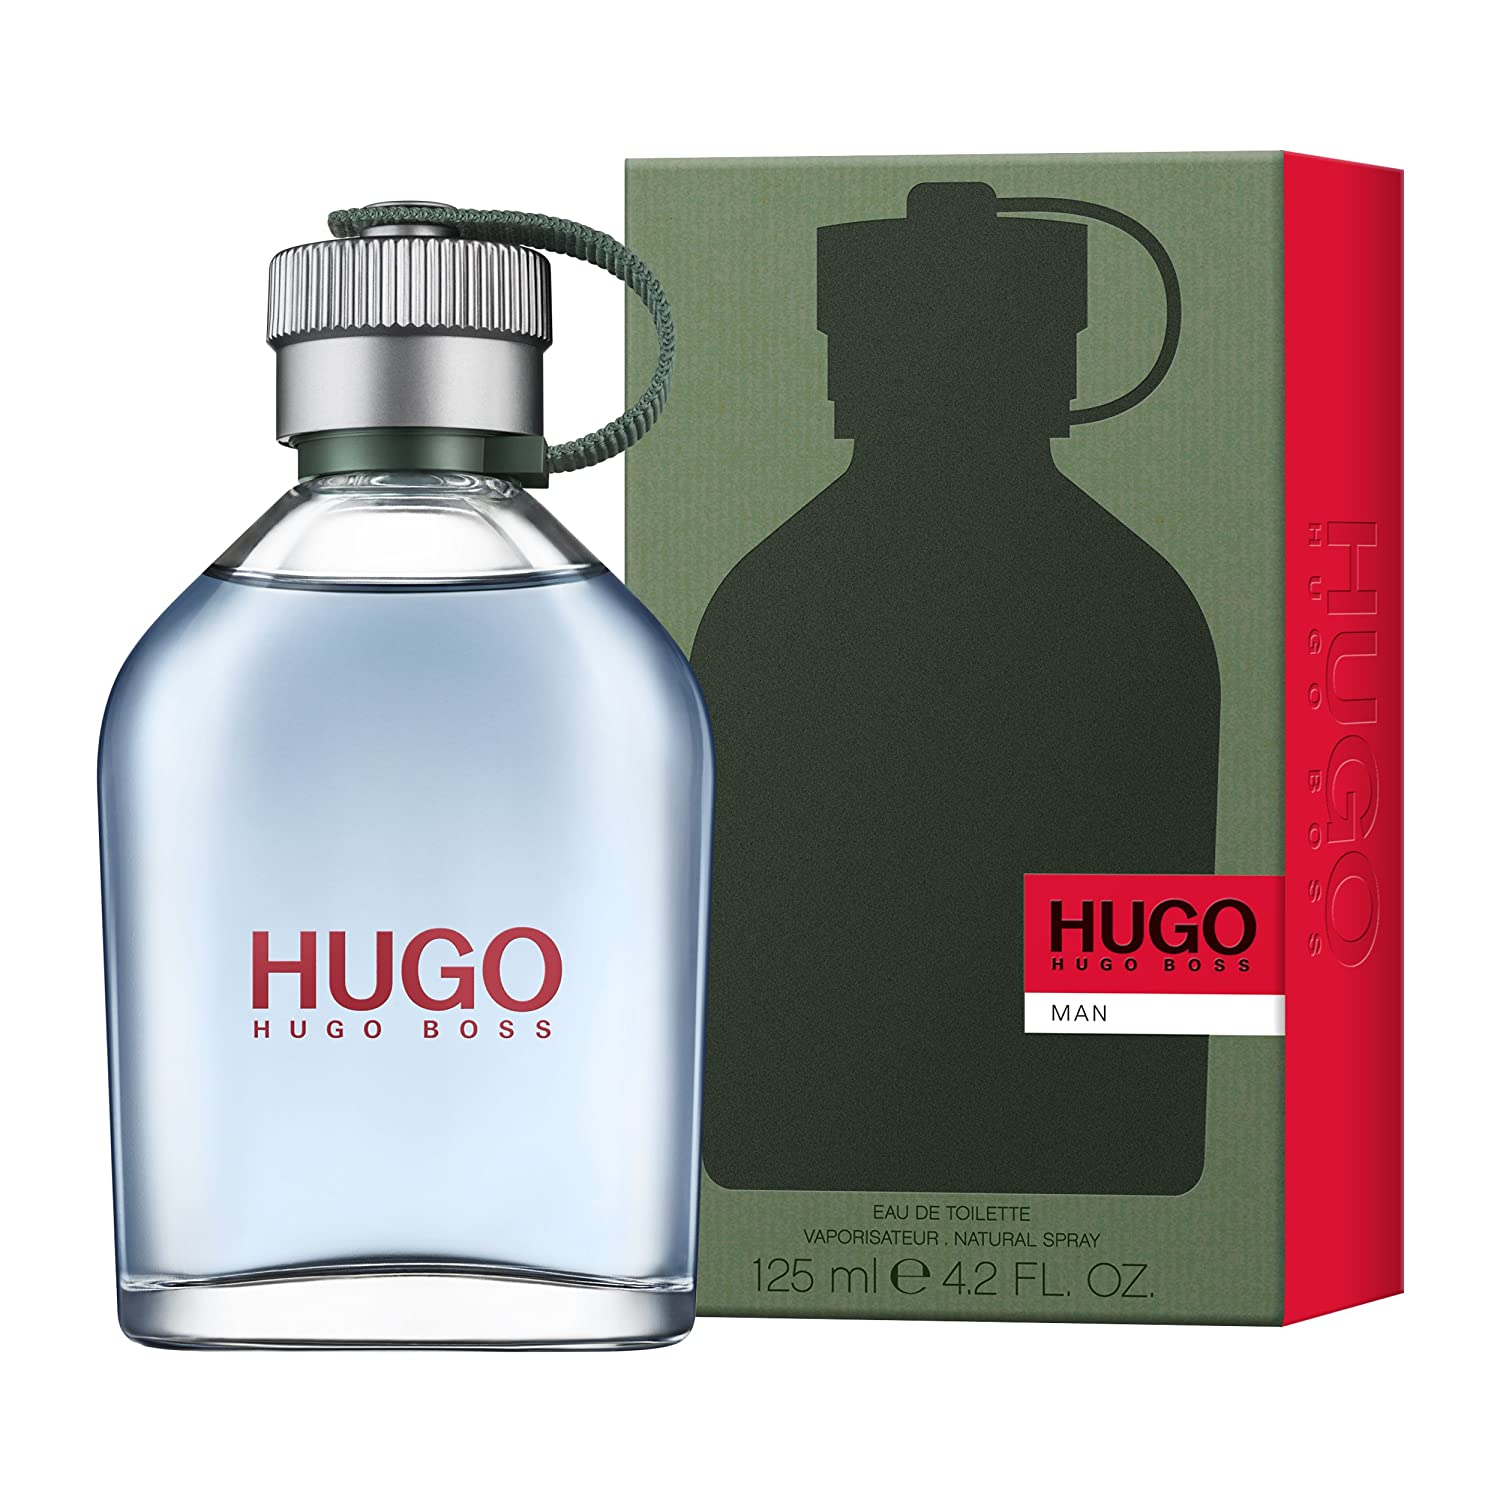 ba99e2ef1c Hugo Boss Man Eau De Toilette for Men, 125 ml: Amazon.co.uk: Beauty